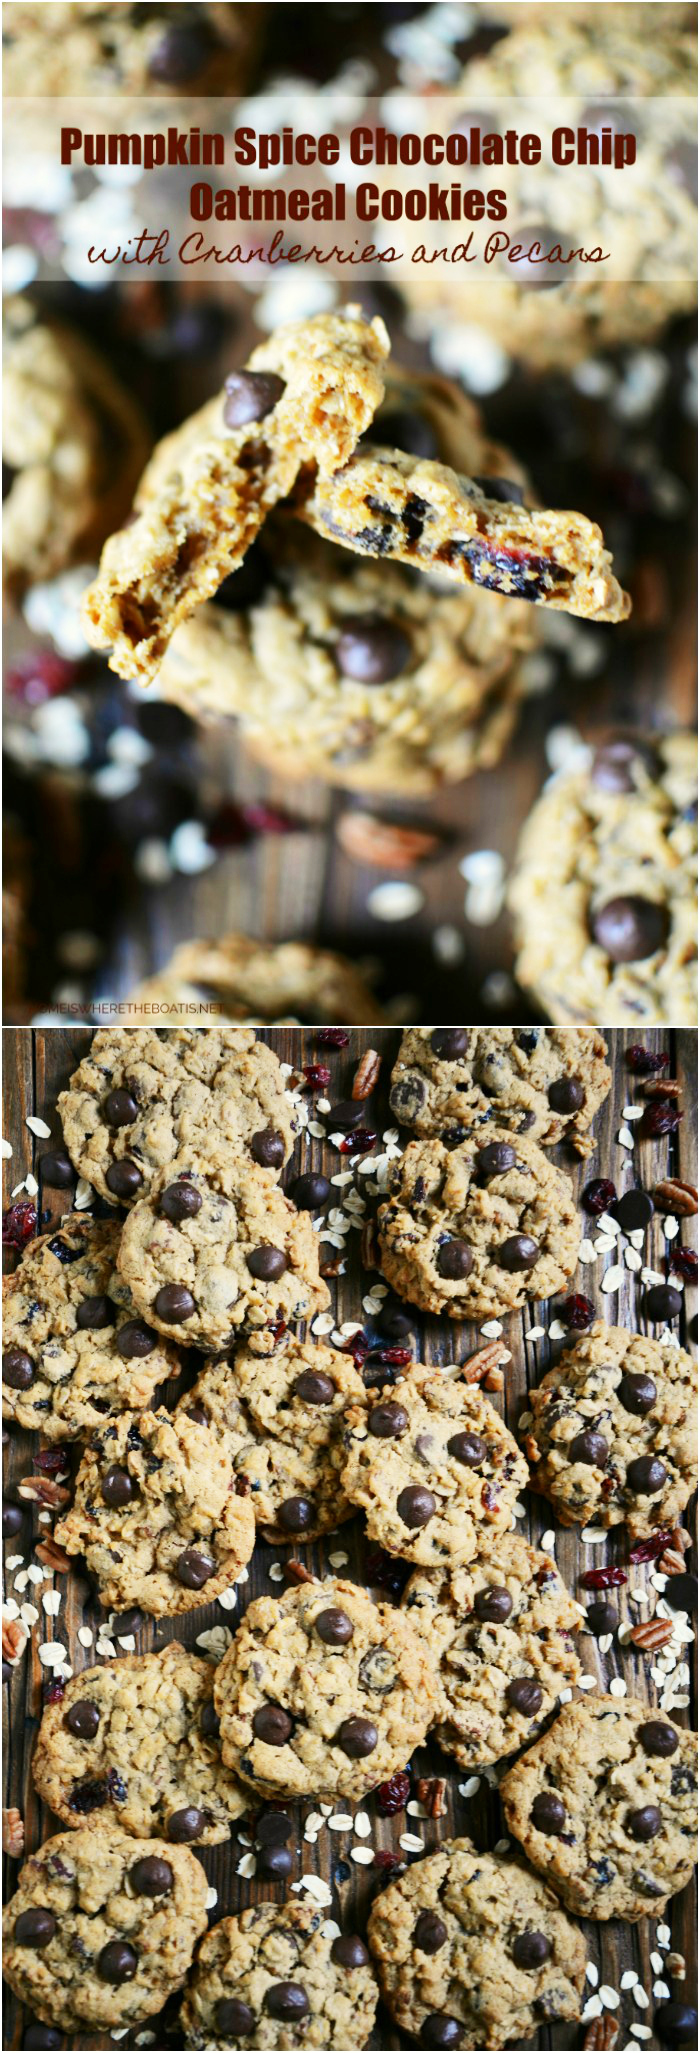 Pumpkin Spice Chocolate Chip Oatmeal Cookies with Cranberries and Pecans! These cookies are chewy, moist, nutty, and chocolaty with just the right amount of pumpkin spice.